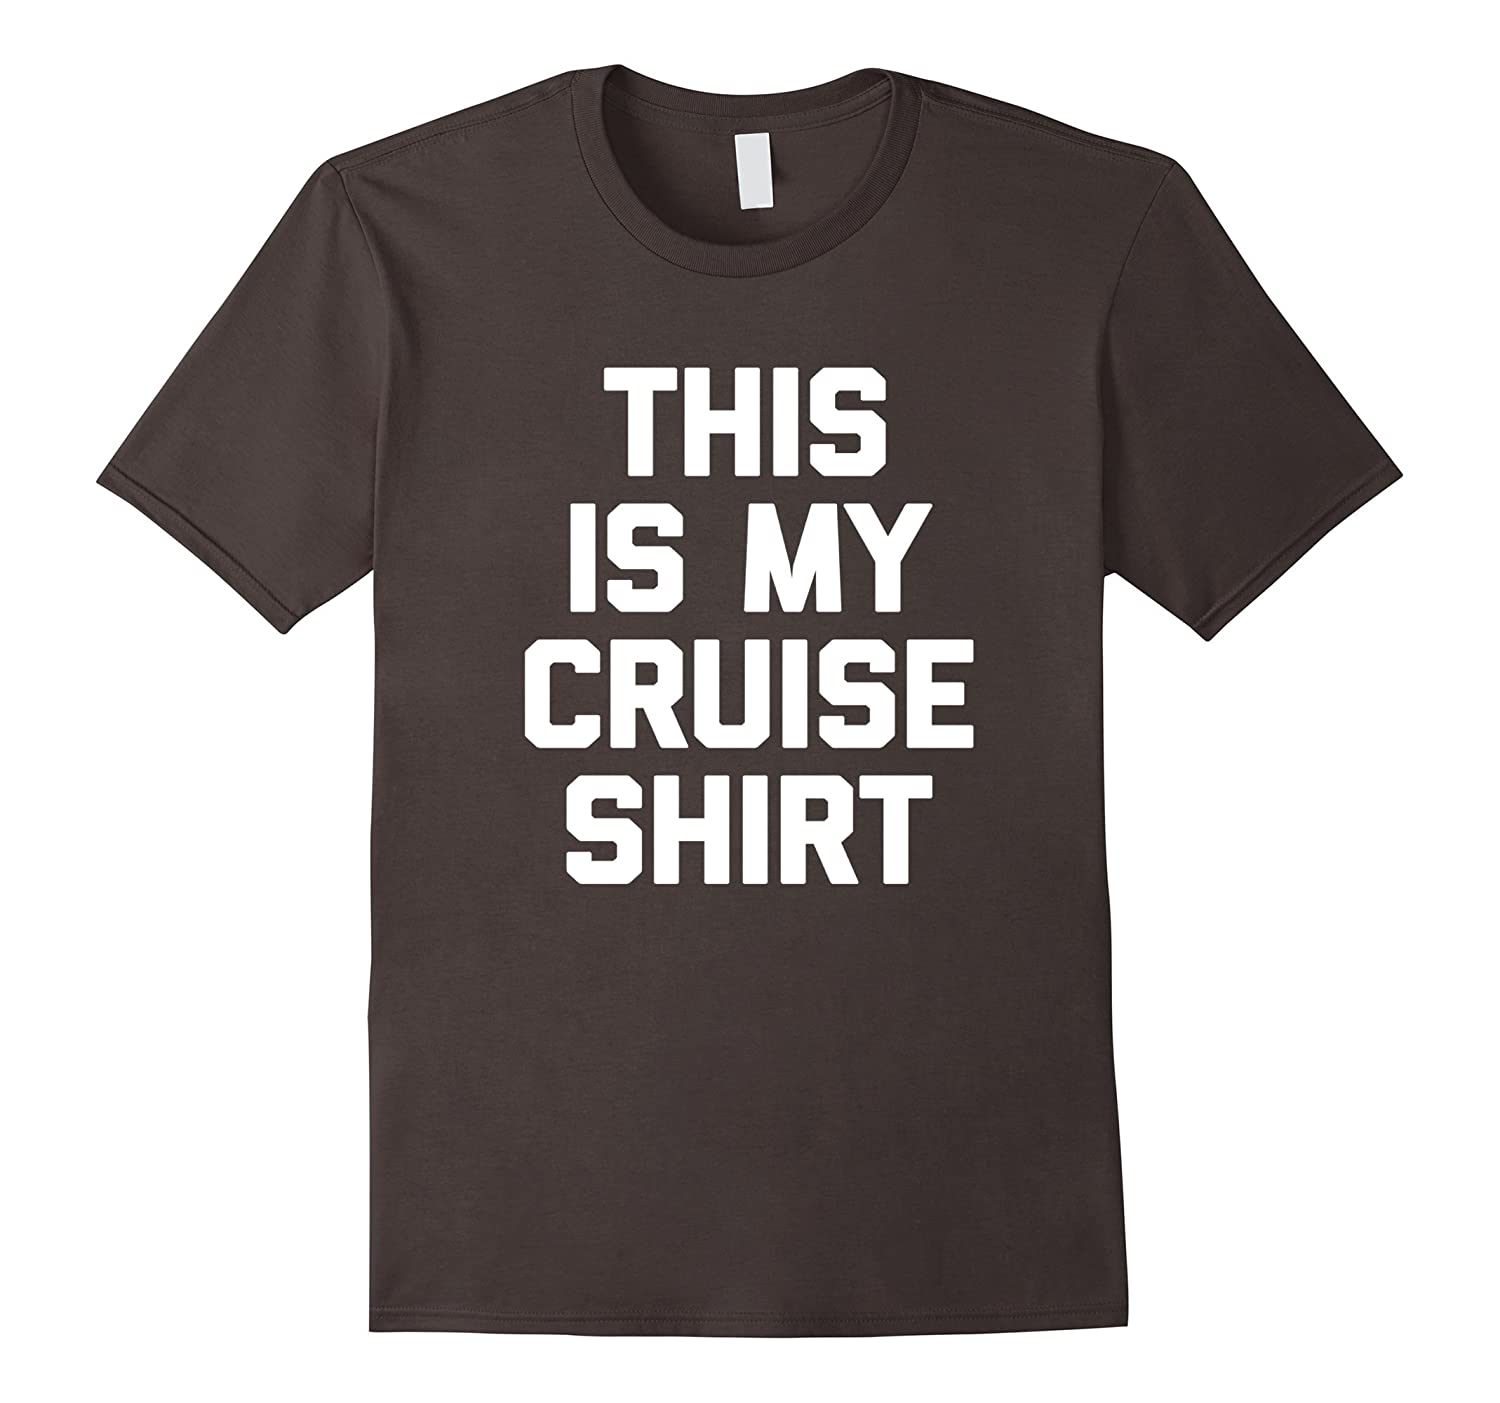 This Is My Cruise Shirt T-Shirt funny saying sarcastic cool